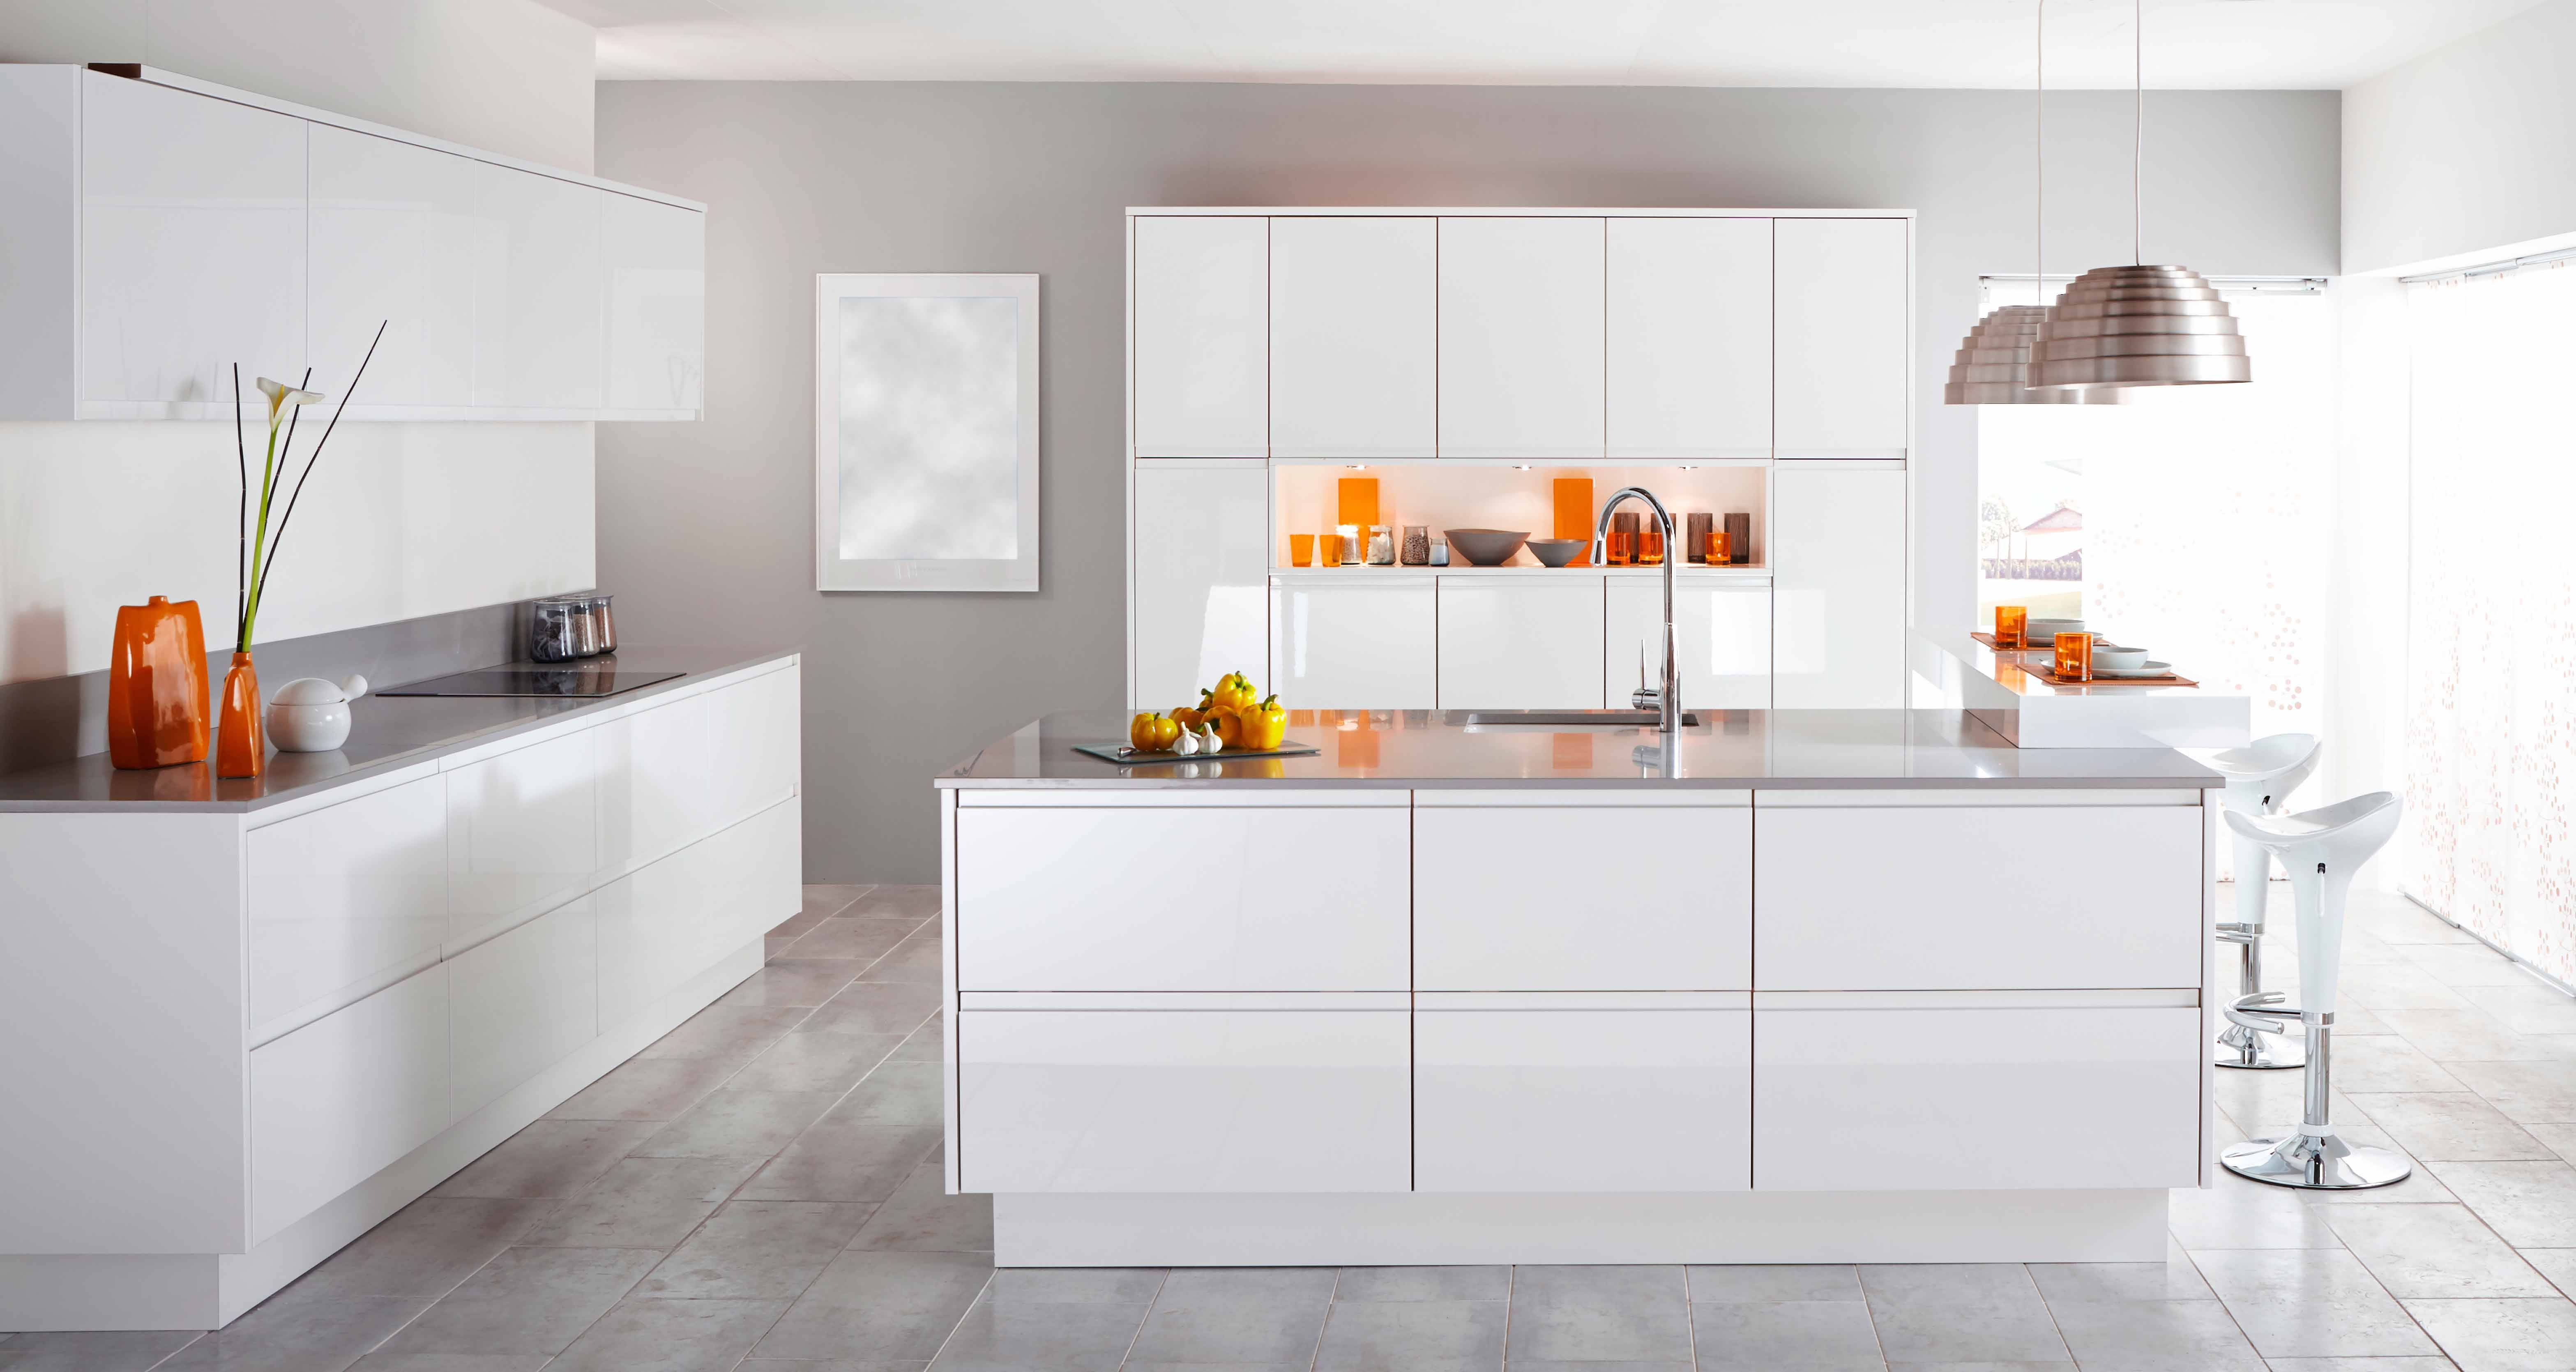 Kitchen Cabinets in our Showroom